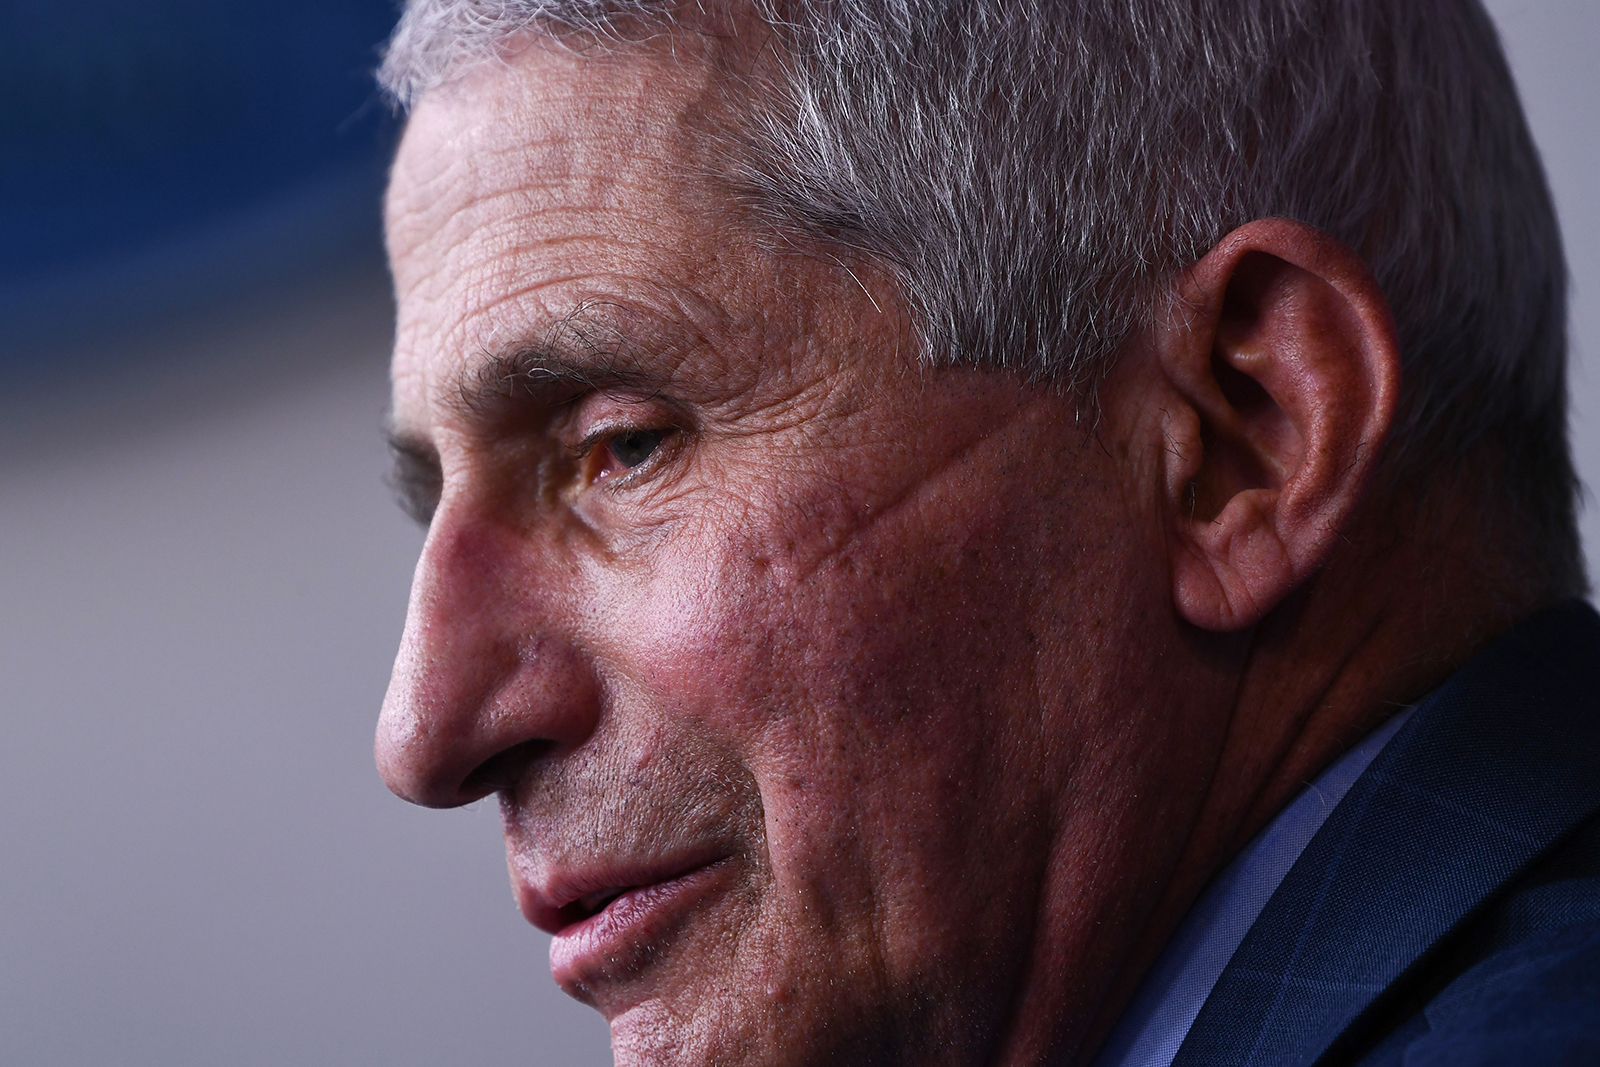 Anthony Fauci speaks during a White House Coronavirus Task Force press briefing in the James S. Brady Briefing Room of the White House on November 19, 2020.